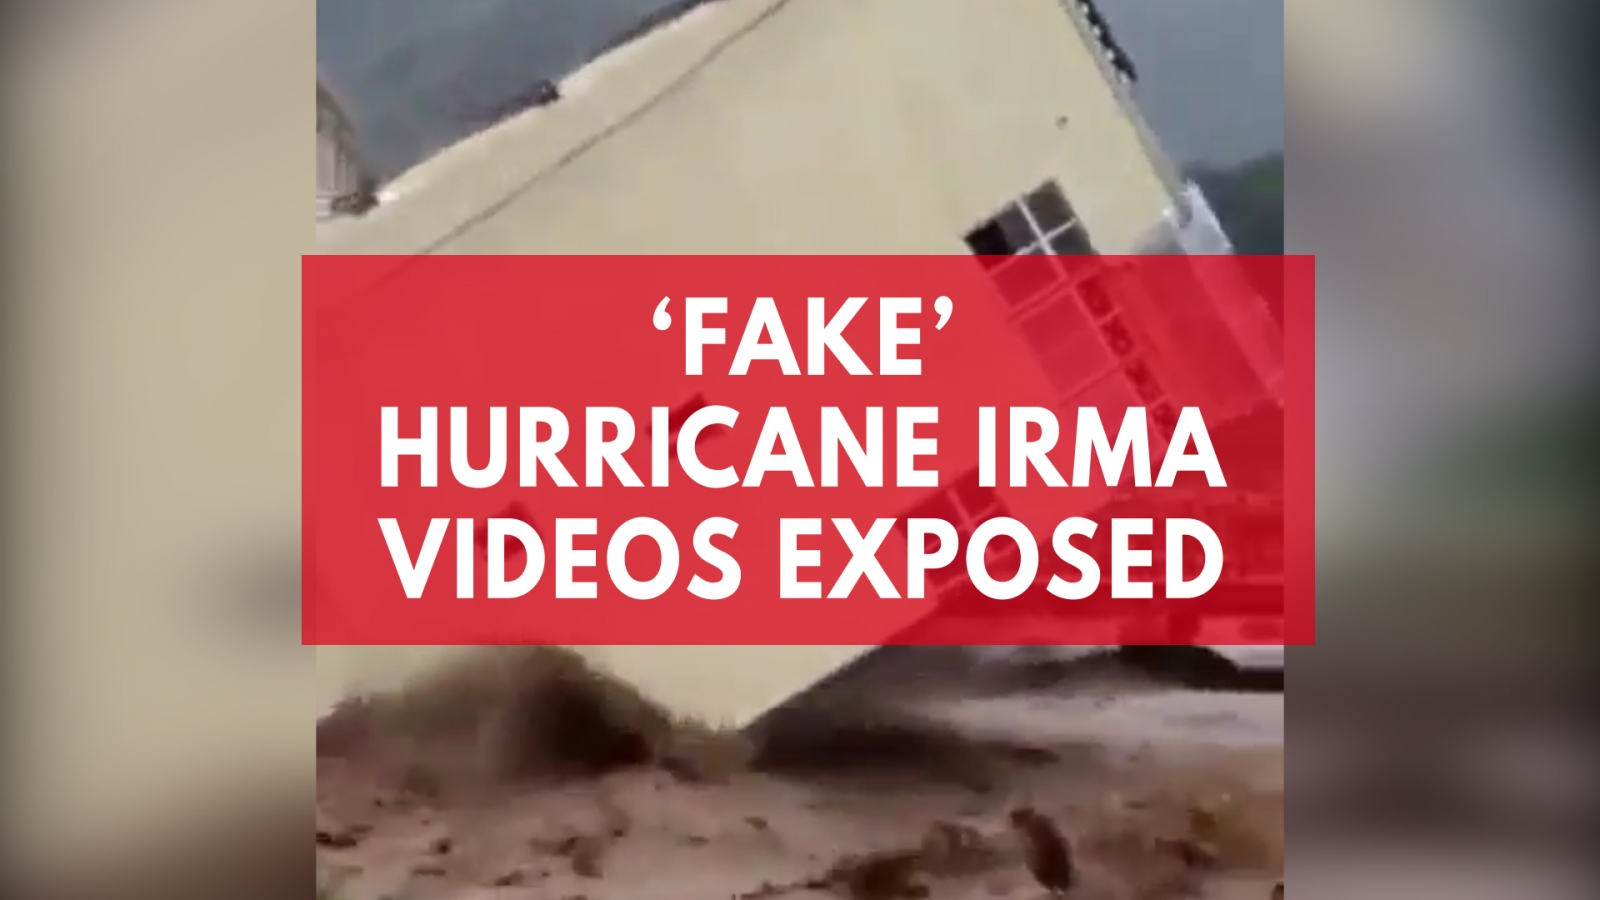 fake-hurricane-irma-videos-widely-shared-on-social-media